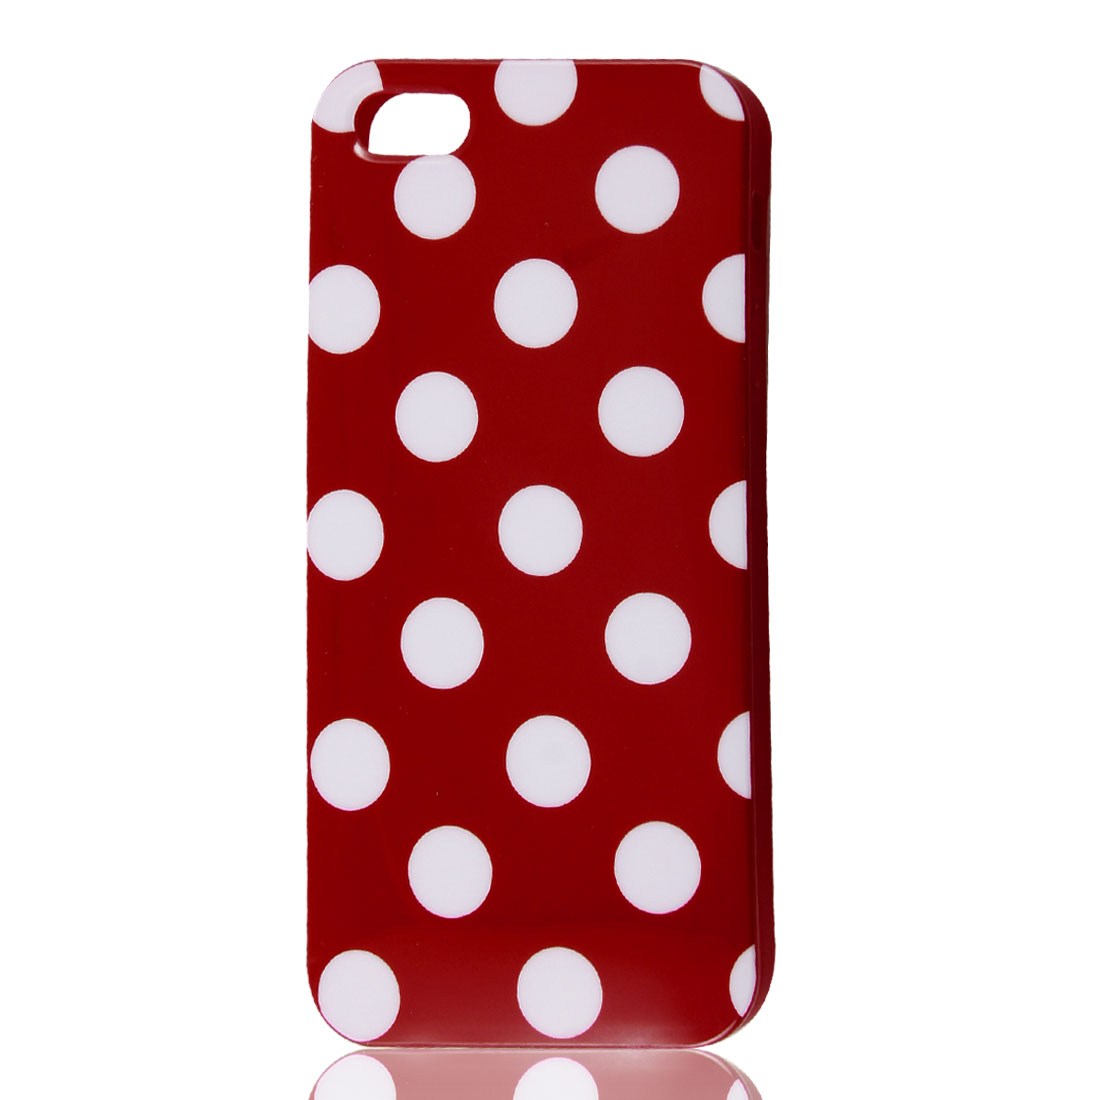 White Polka Dots Red Soft Plastic Case Cover for Apple iPhone 5 5G